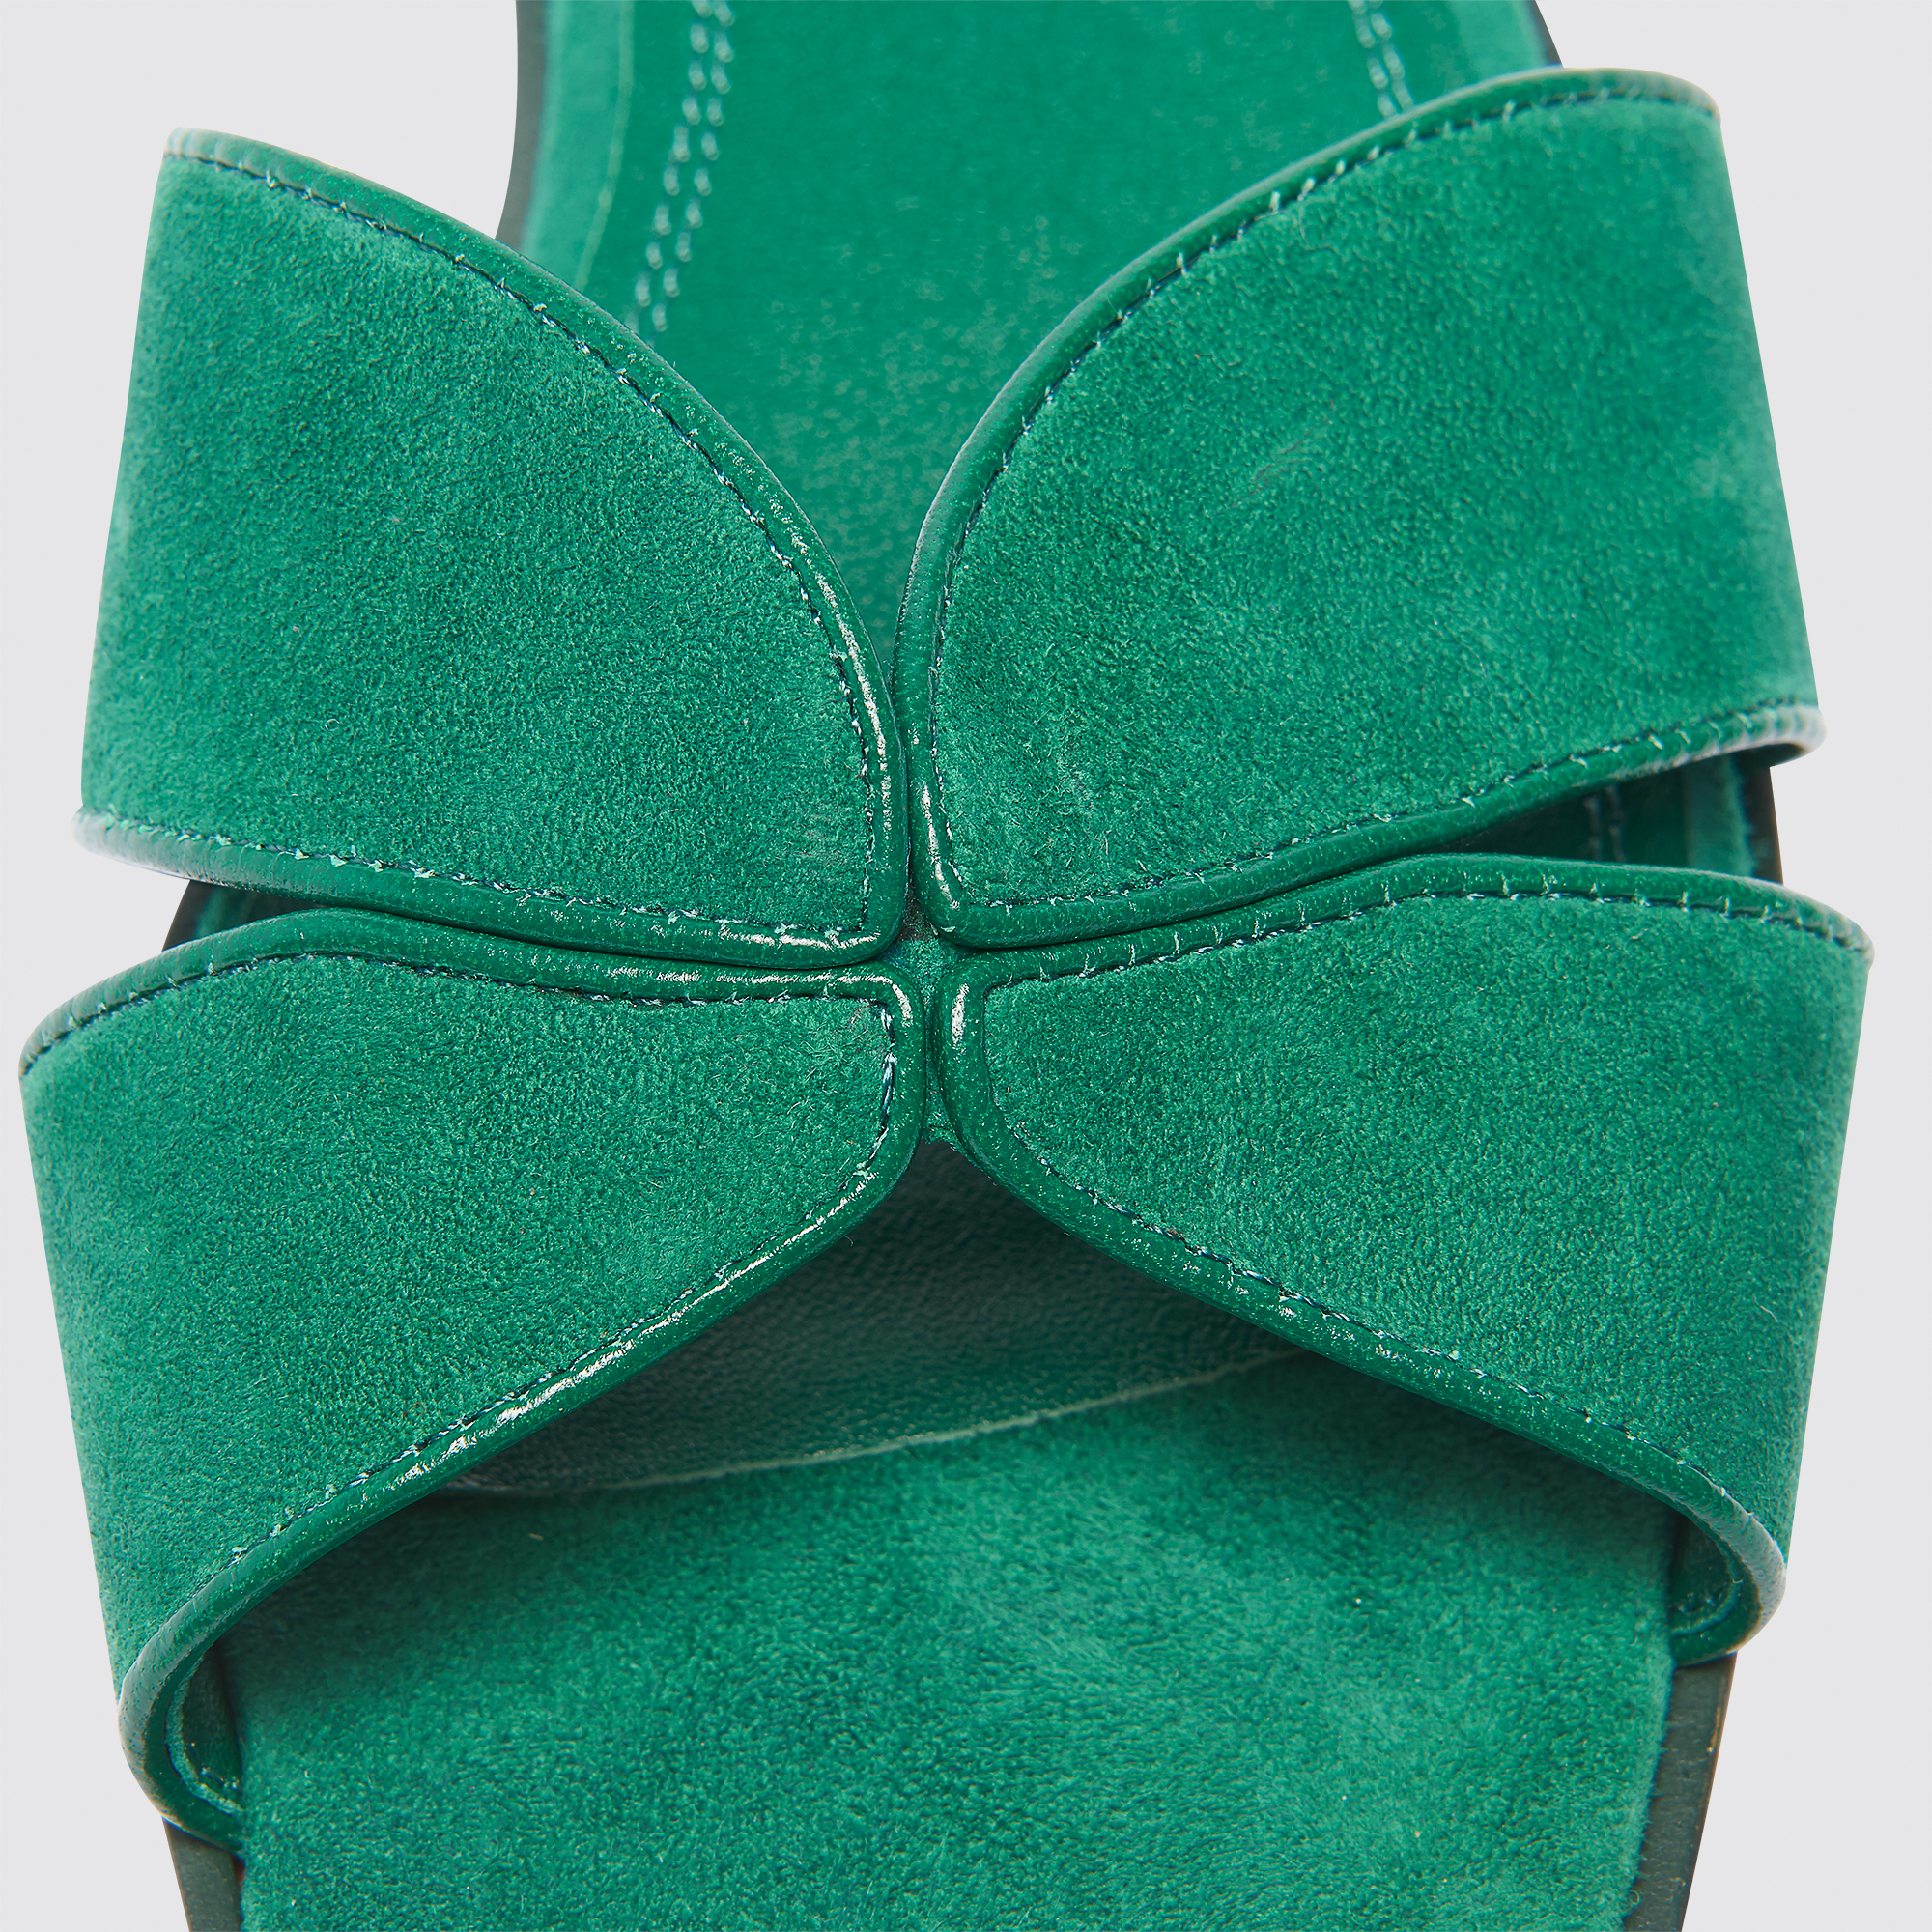 72368418dd95 Elly. Loading zoom. view full image size. Flat leather crossover sandals ...